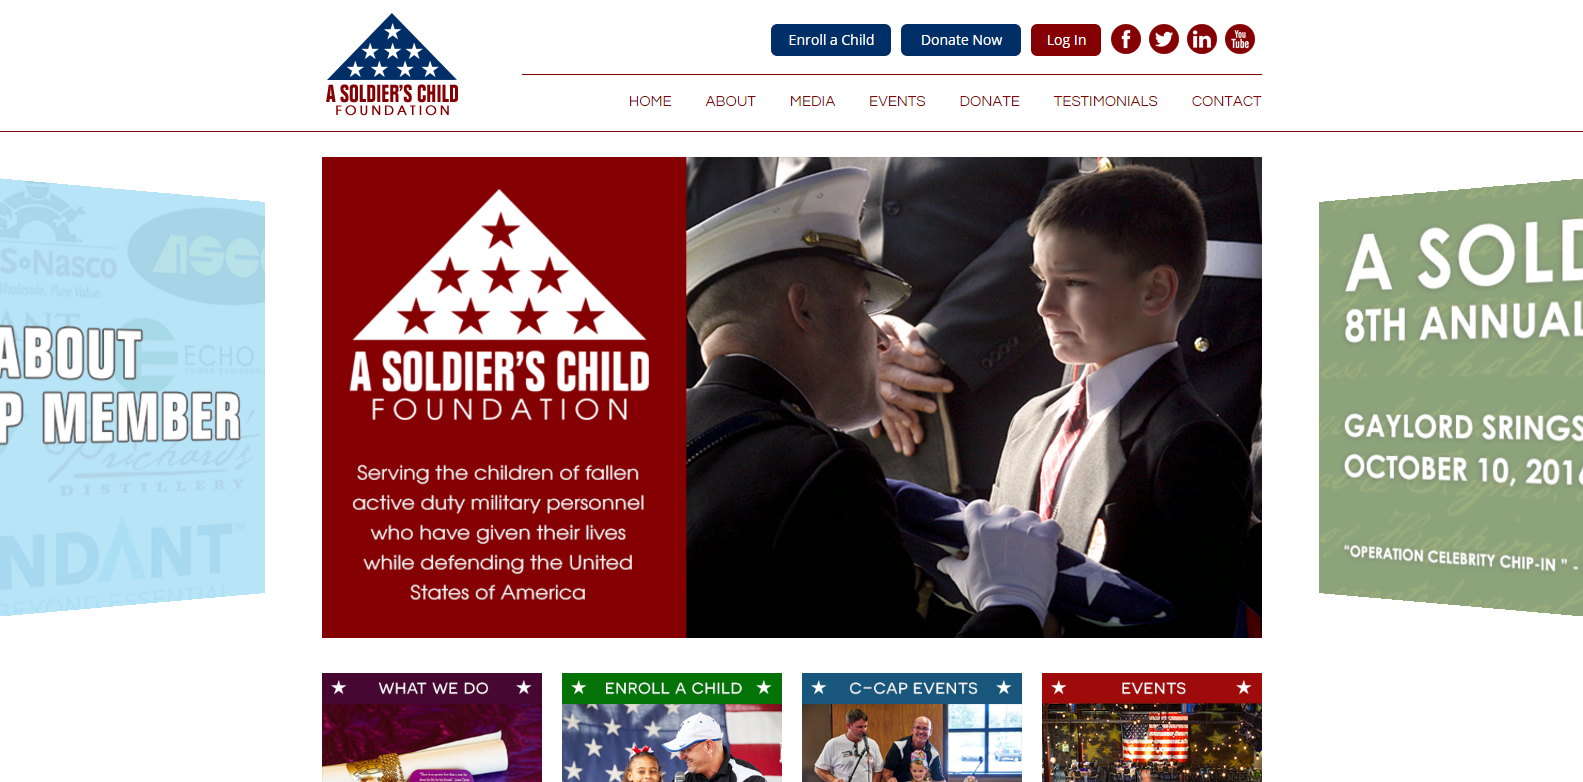 A Soldier's Child<div style='clear:both;width:100%;height:0px;'></div><span class='cat'>Non-Profit</span>